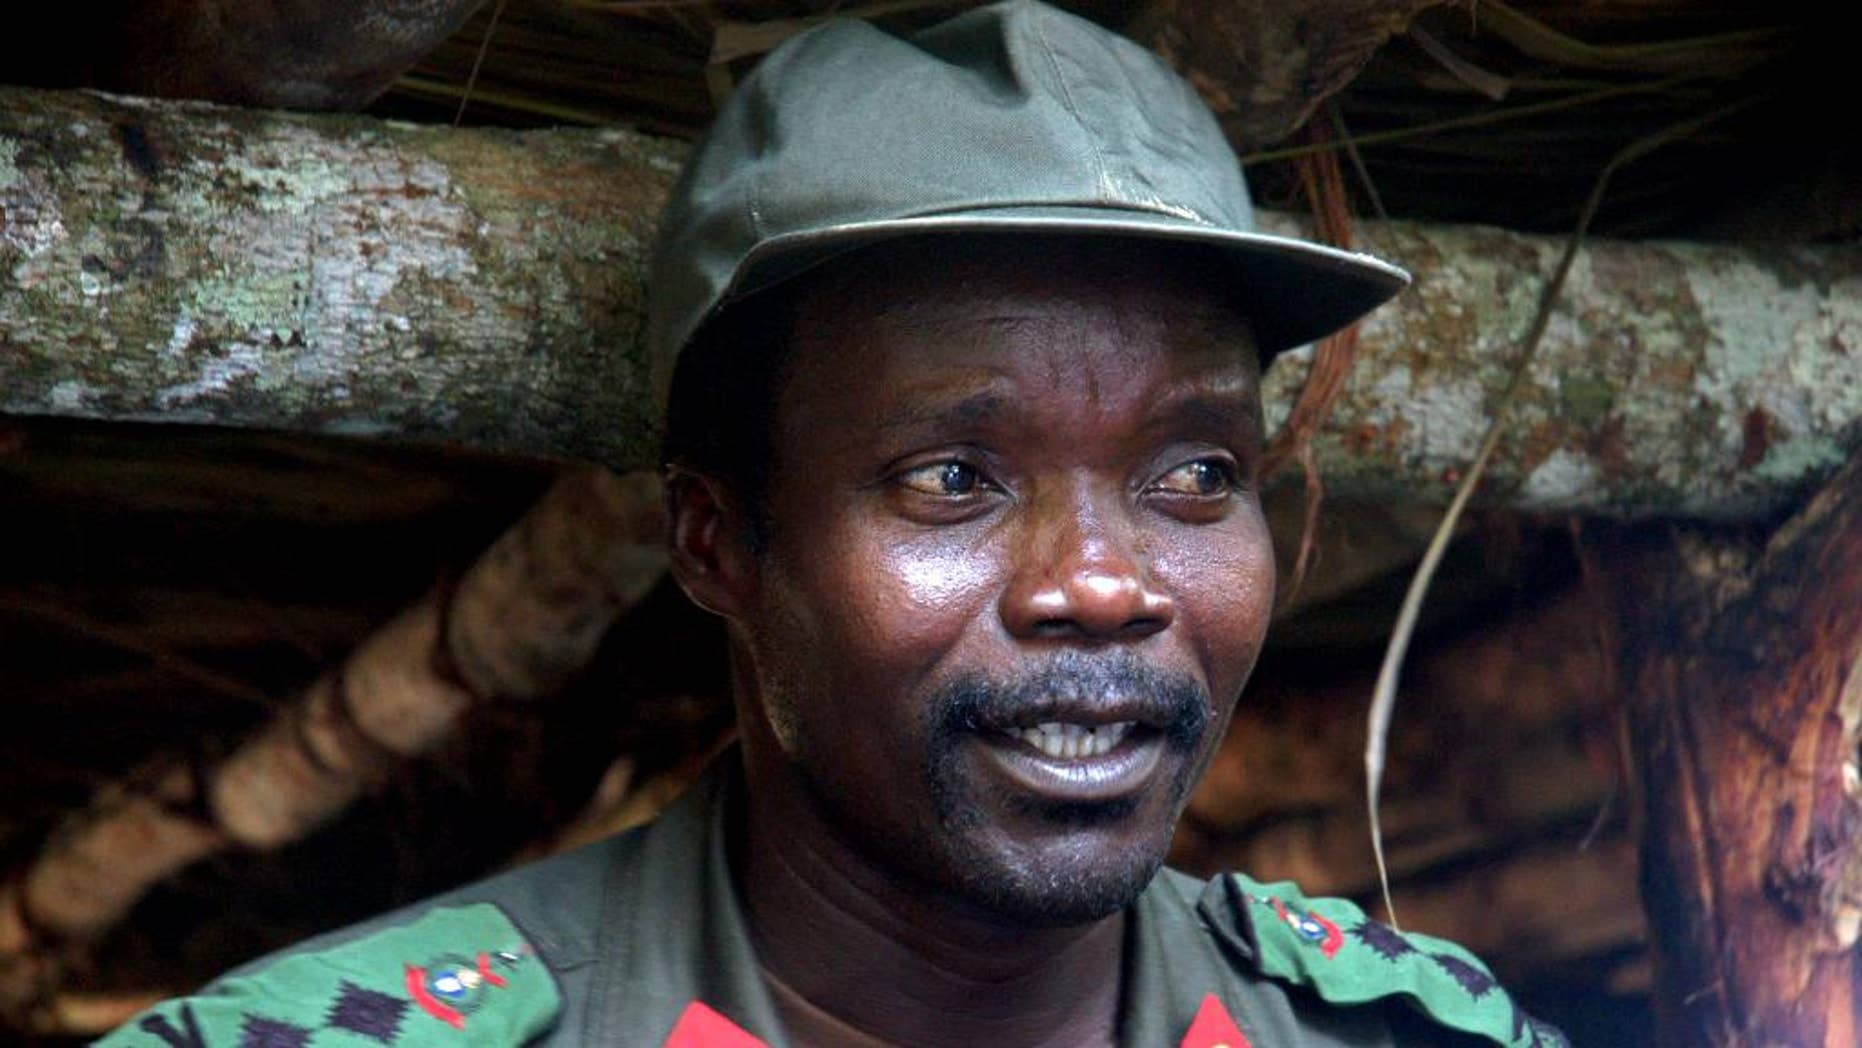 FILE - In this July 31, 2006 file photo, Joseph Kony, leader of the Lord's Resistance Army, speaks during a meeting with a delegation of 160 officials and lawmakers from northern Uganda and representatives of non-governmental organizations in Congo near the Sudan border. The fugitive leader of the Lord's Resistance Army is sickly and in retreat from an international manhunt that includes U.S. forces, a Ugandan military spokesman said Monday,citing the accounts of recent defectors who are backing up reports that the rebel group is in decline. Joseph Kony is possibly suffering from diabetes, according to defectors who surrendered to Ugandan troops last month in Central African Republic, said Lt. Col. Paddy Ankunda (AP Photo, File)